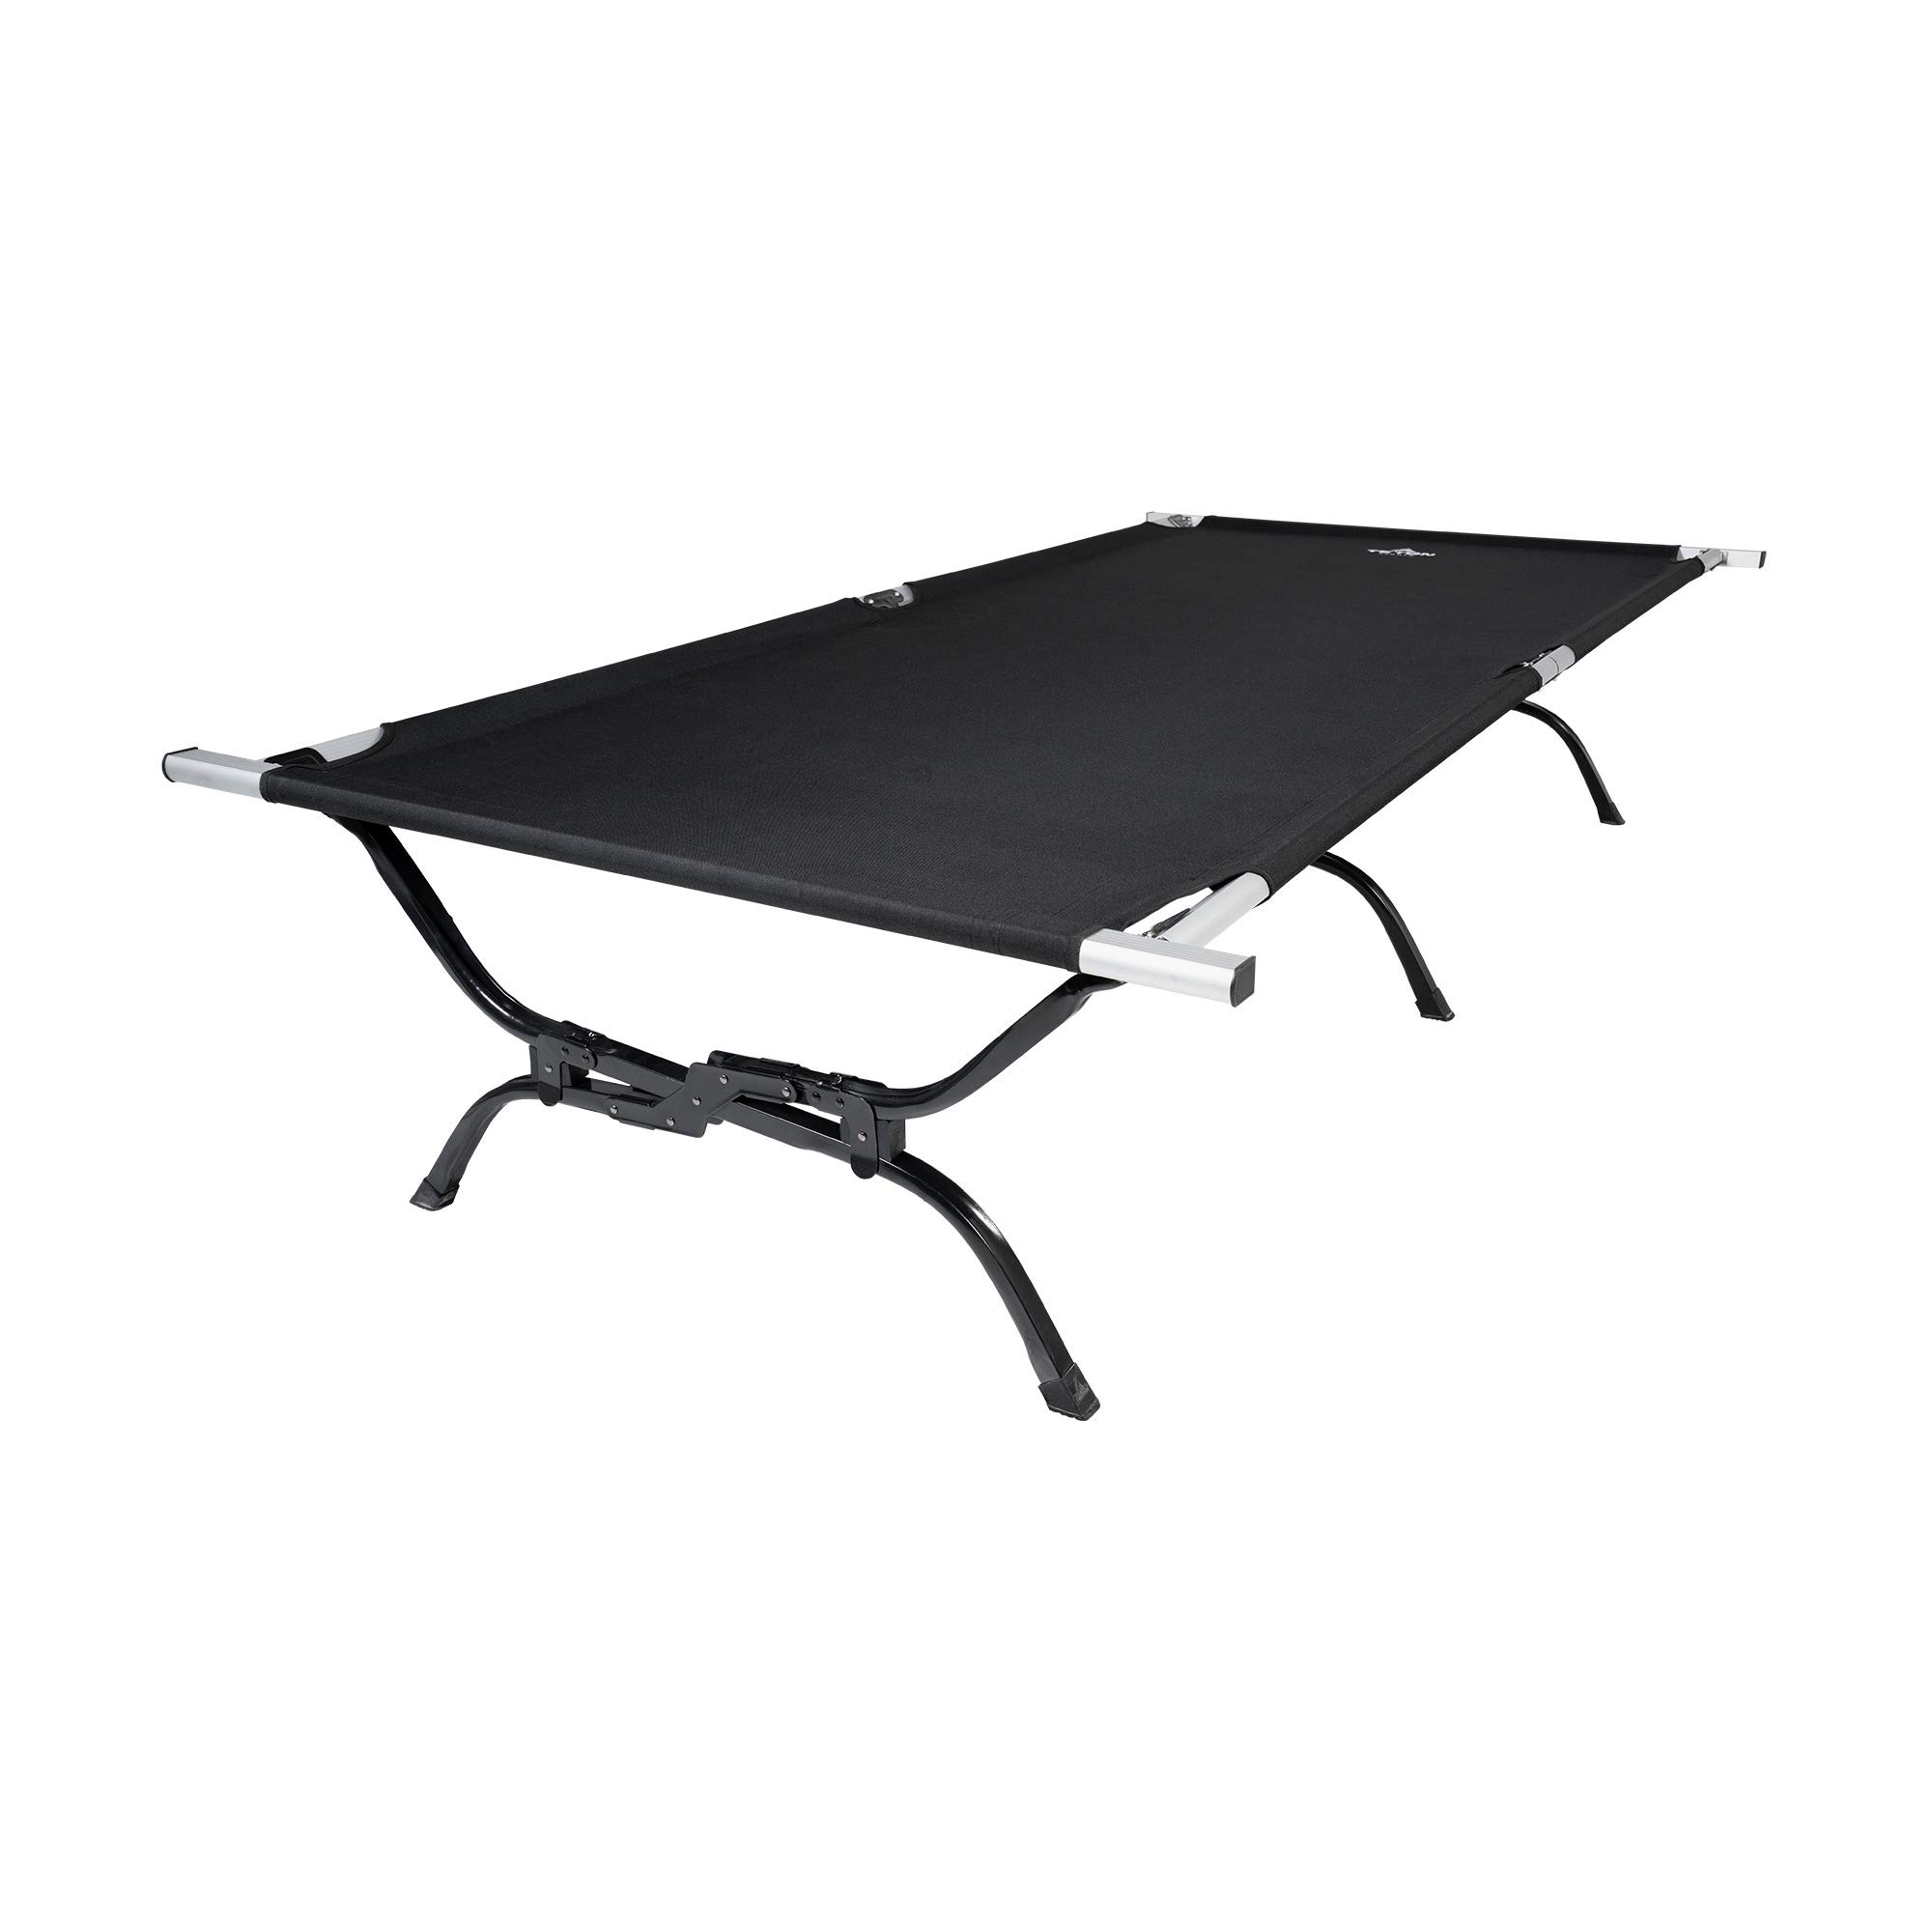 TETON Sports Outfitter XXL Camp Cot; Folding Cot Great for Car Camping by TETON Sports